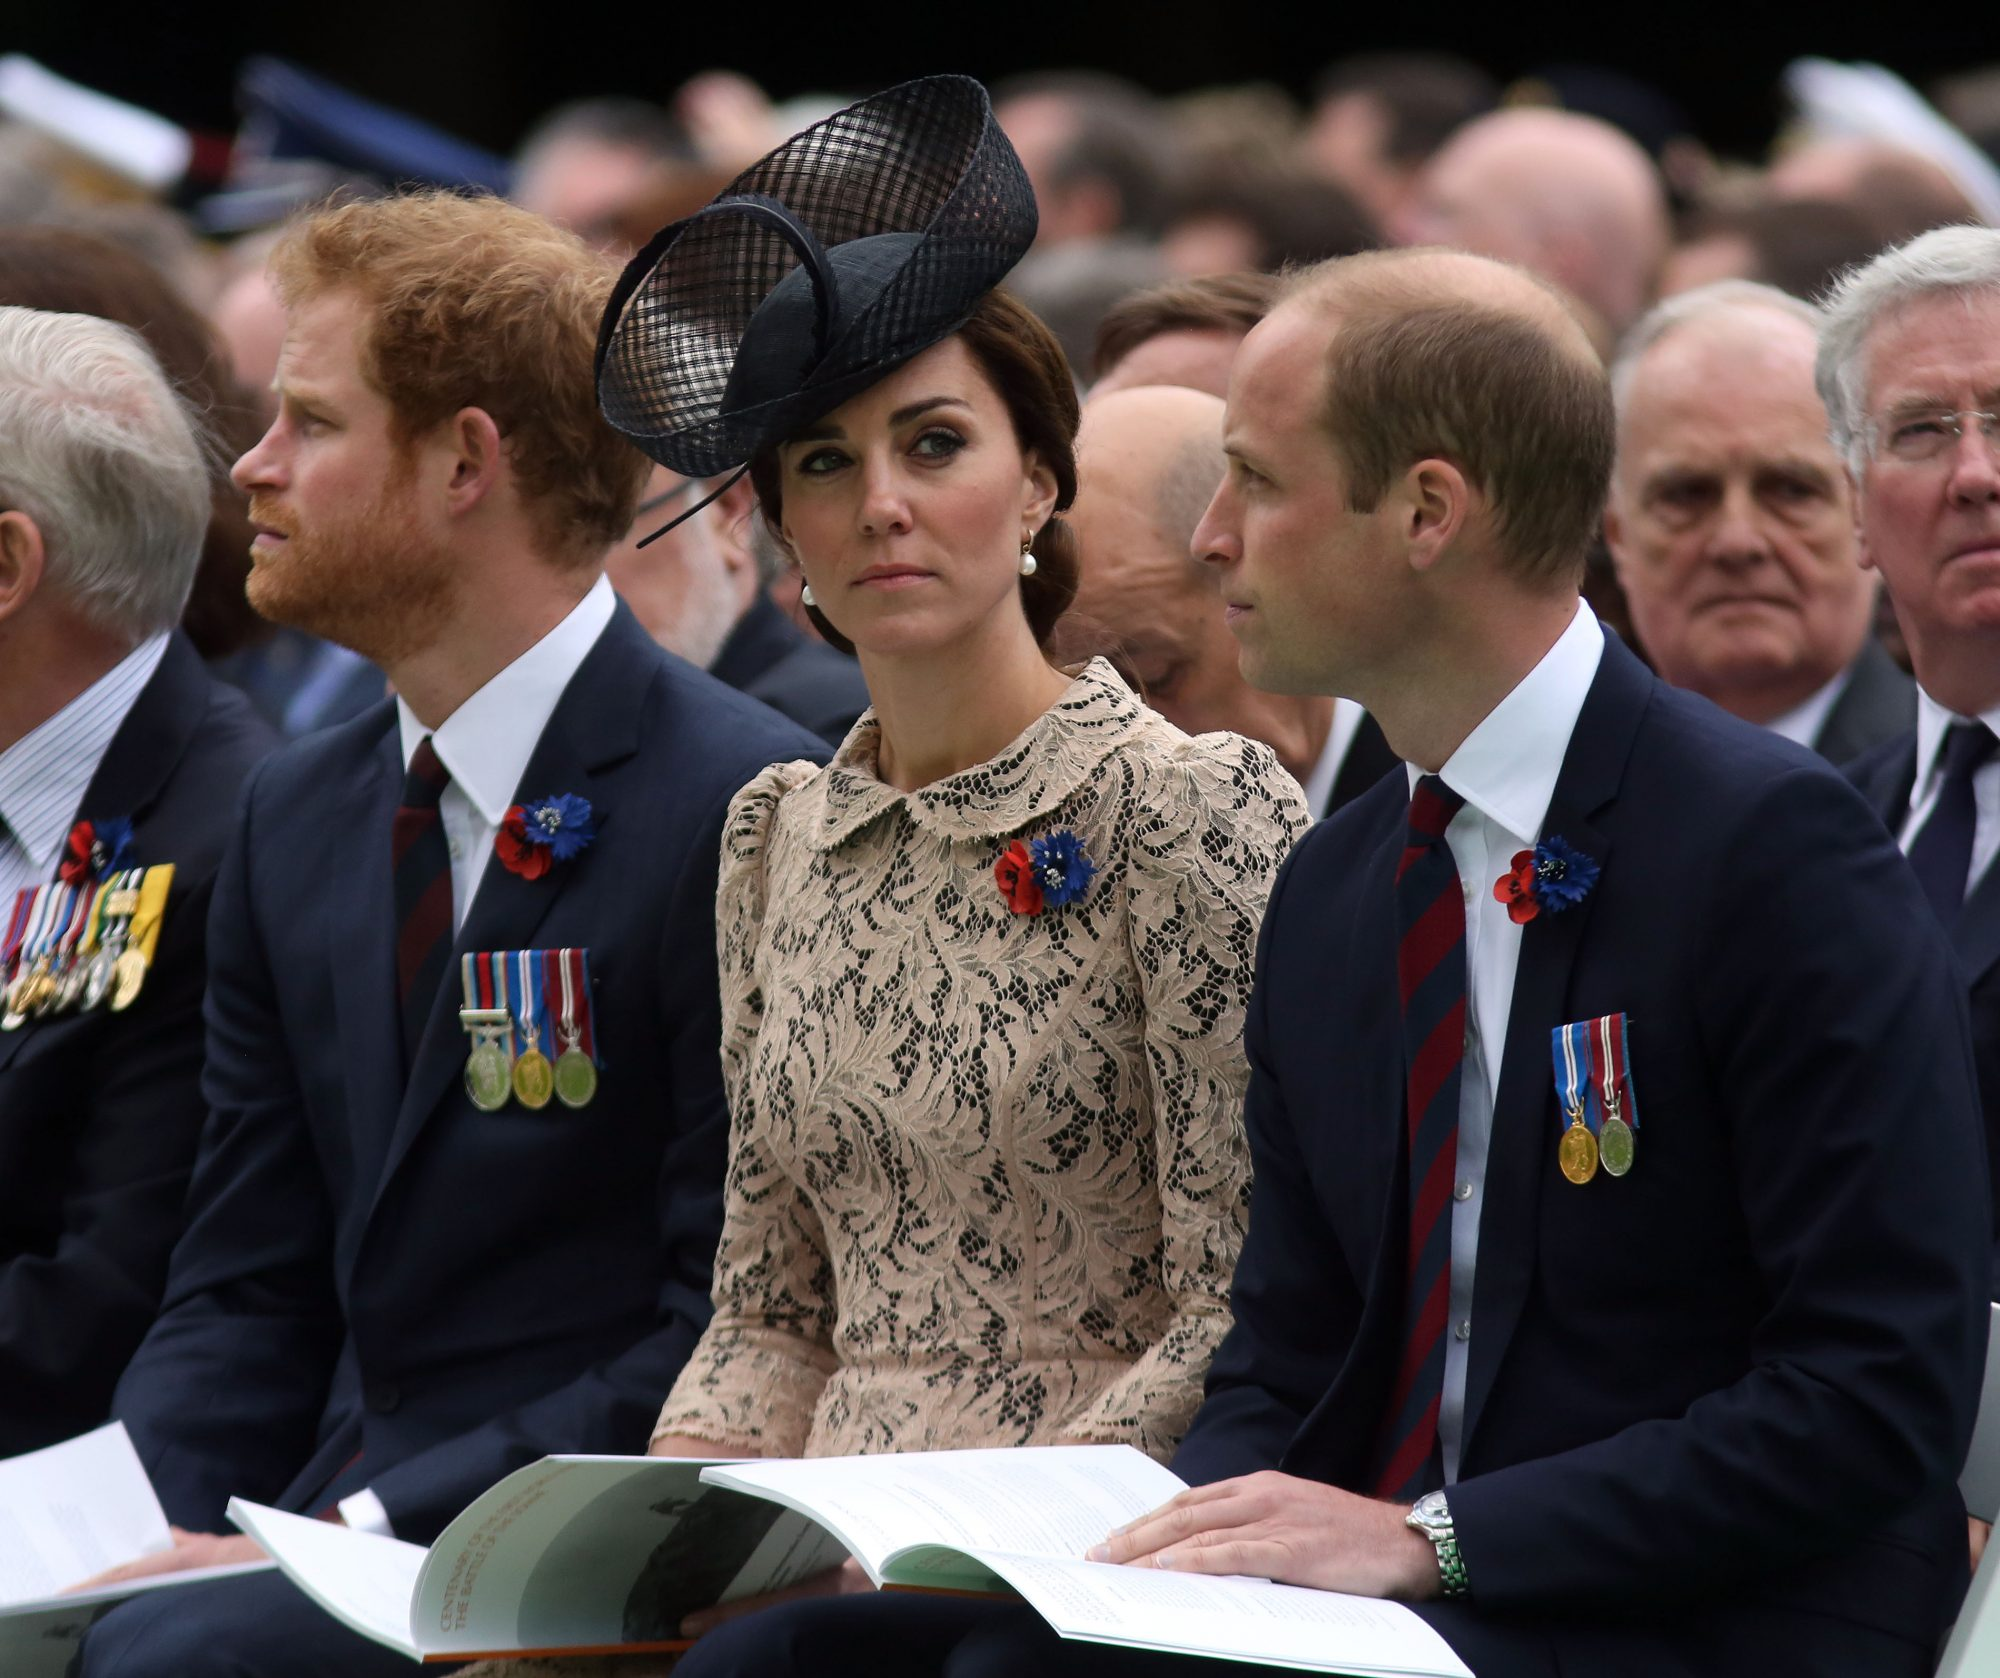 Kate Middleton Reportedly Put an End to Prince William and Prince Harry's Rumored Feud